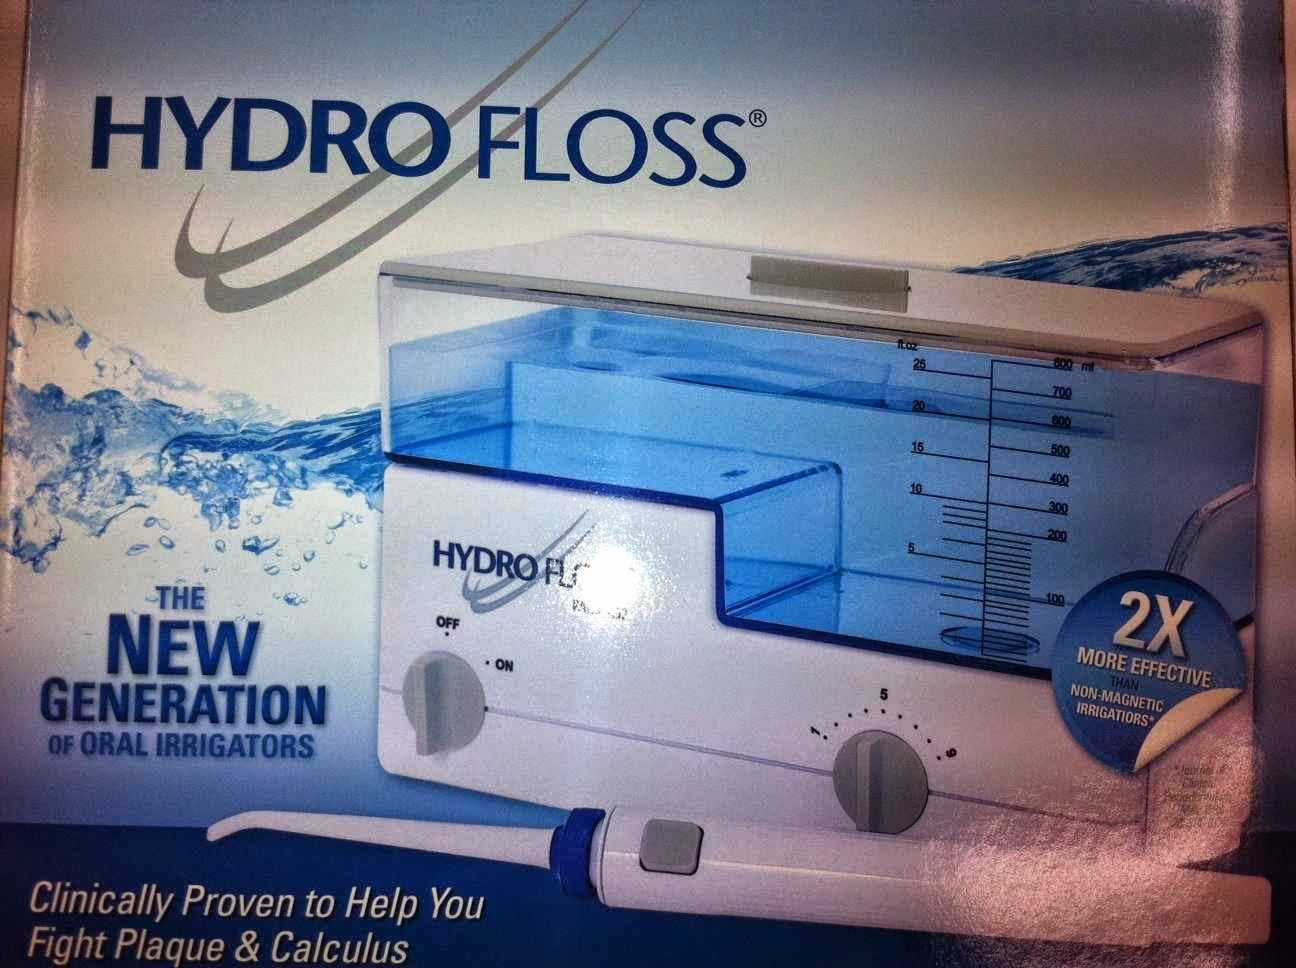 http://www.toothygrinsstore.com/HydroFloss-p/hydrofloss01.htm